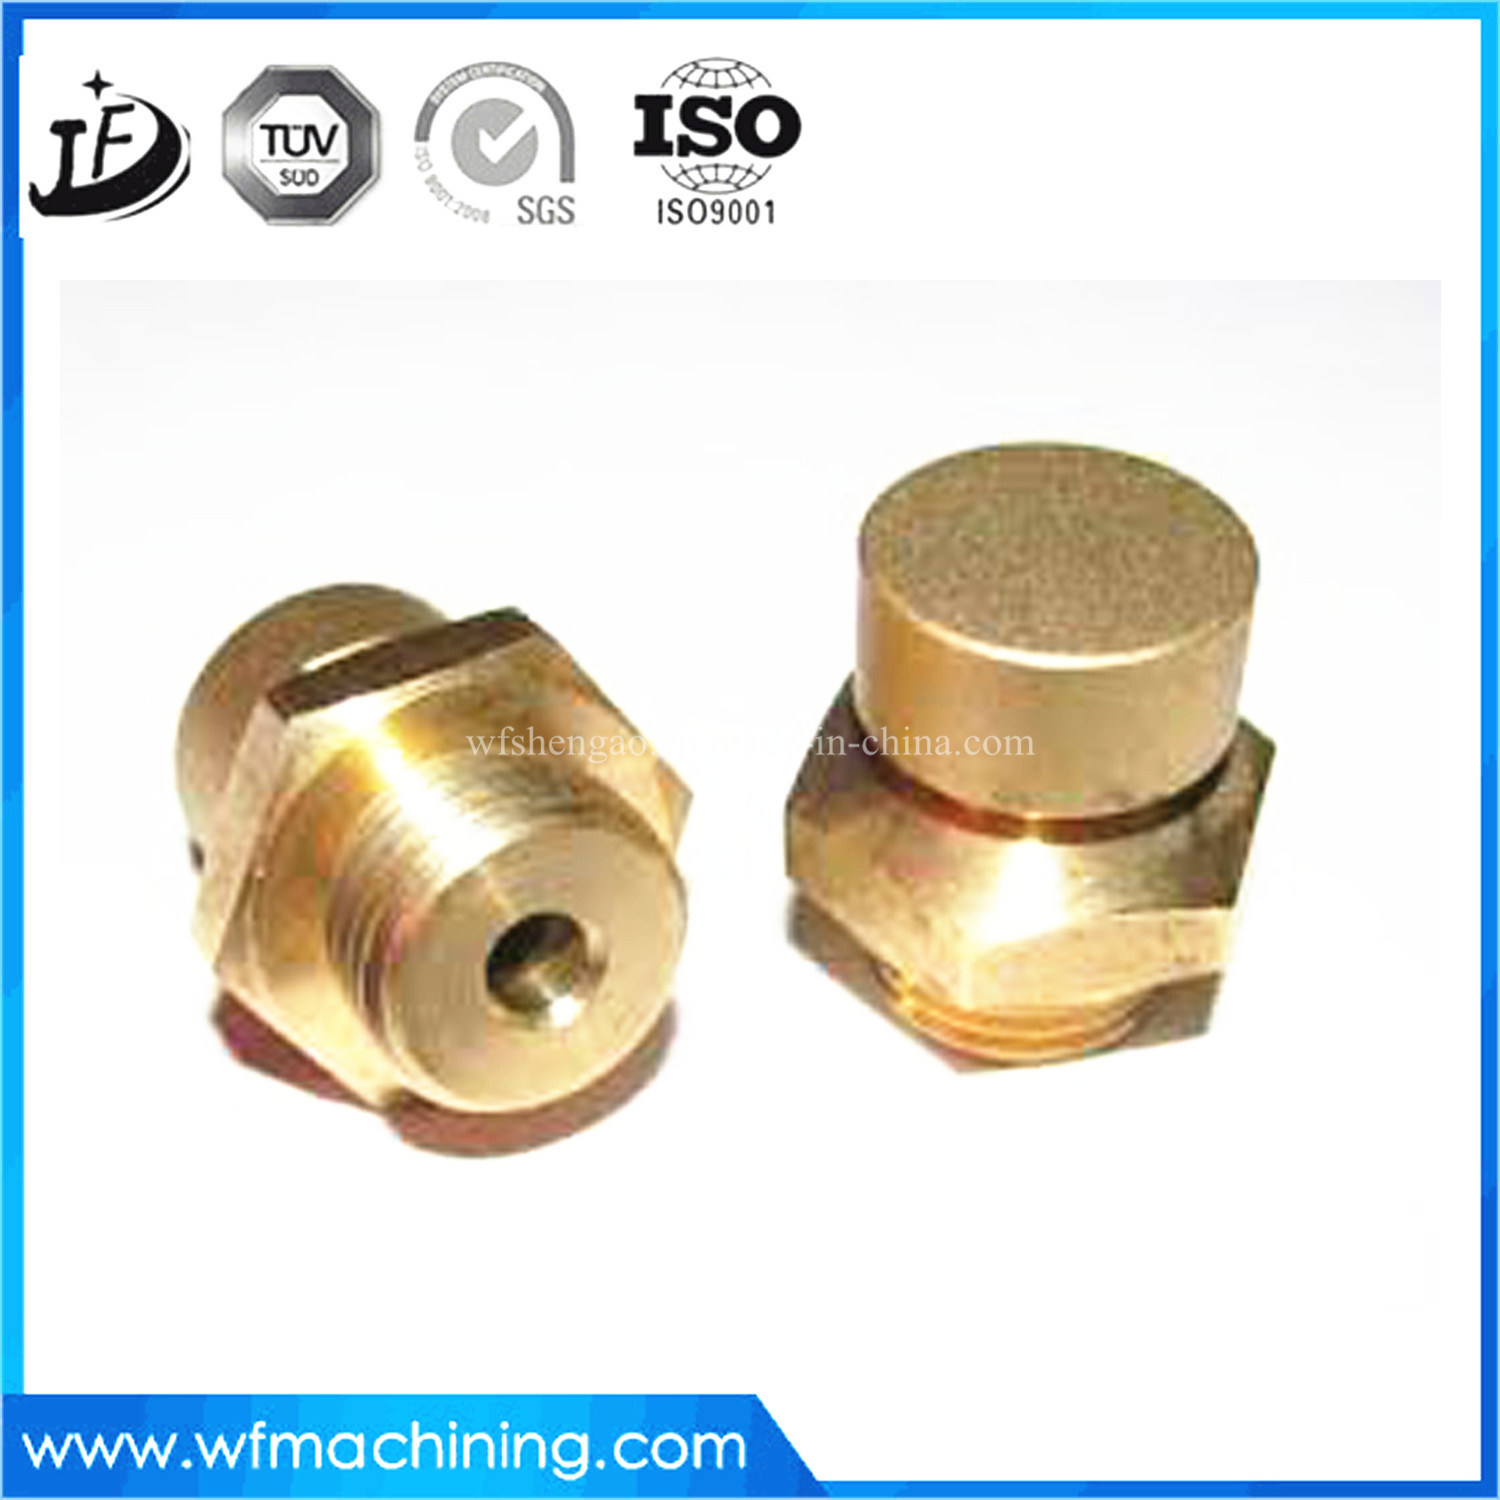 Custom Made High Precision Brass/Copper/Steel CNC Machining Turning Parts